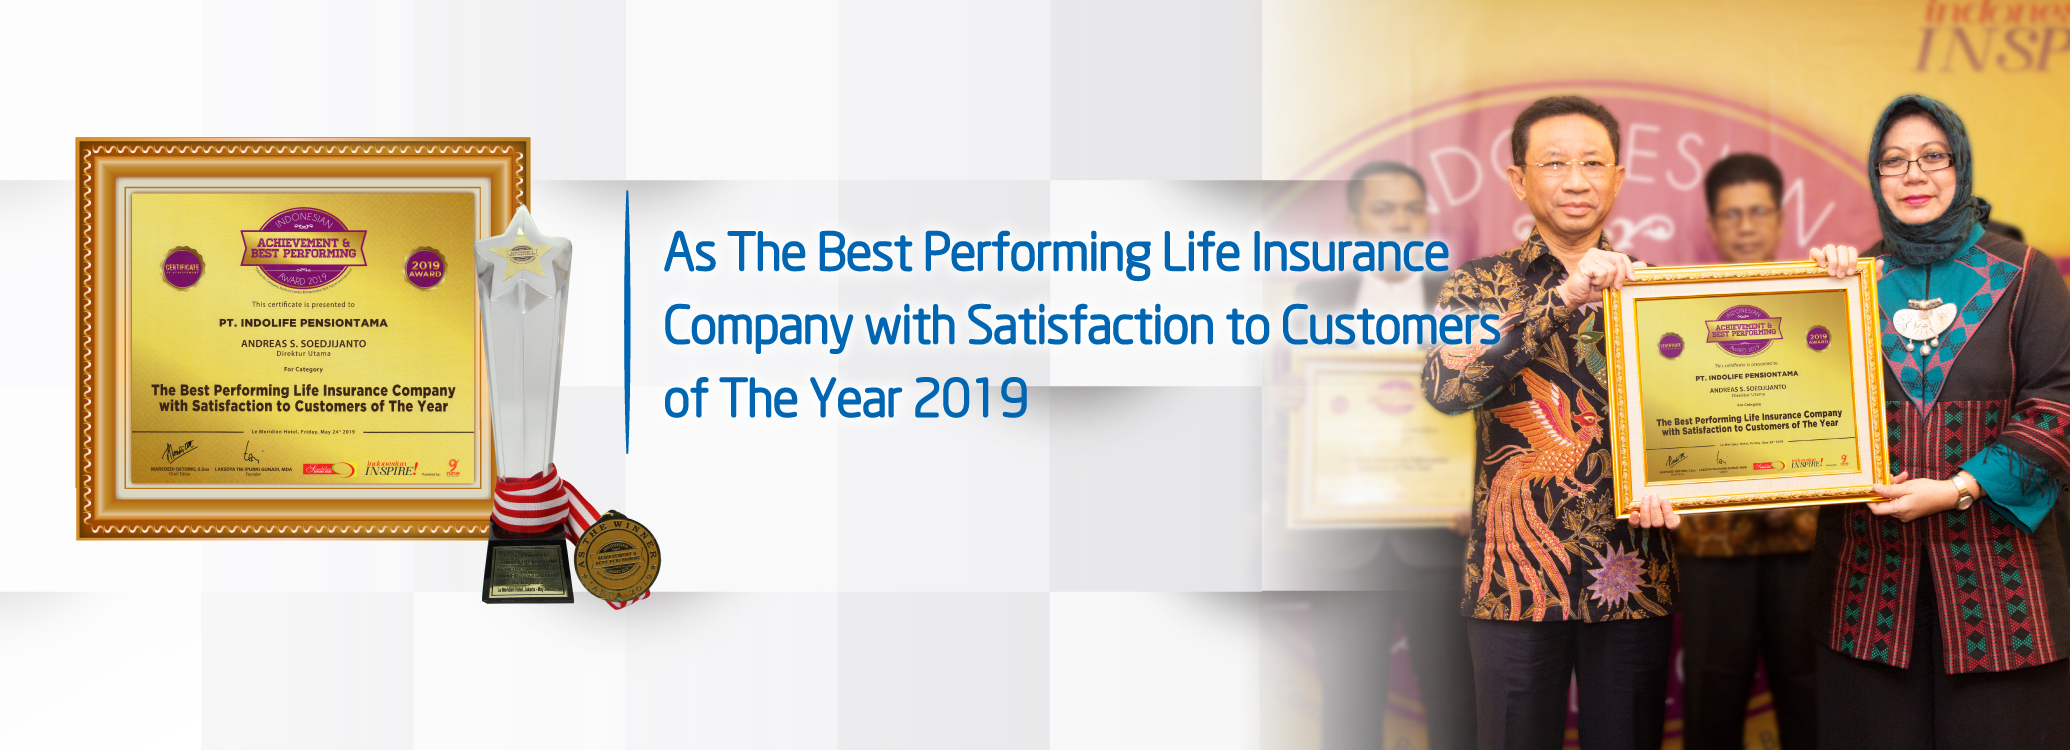 The best performing life insurance company 2019